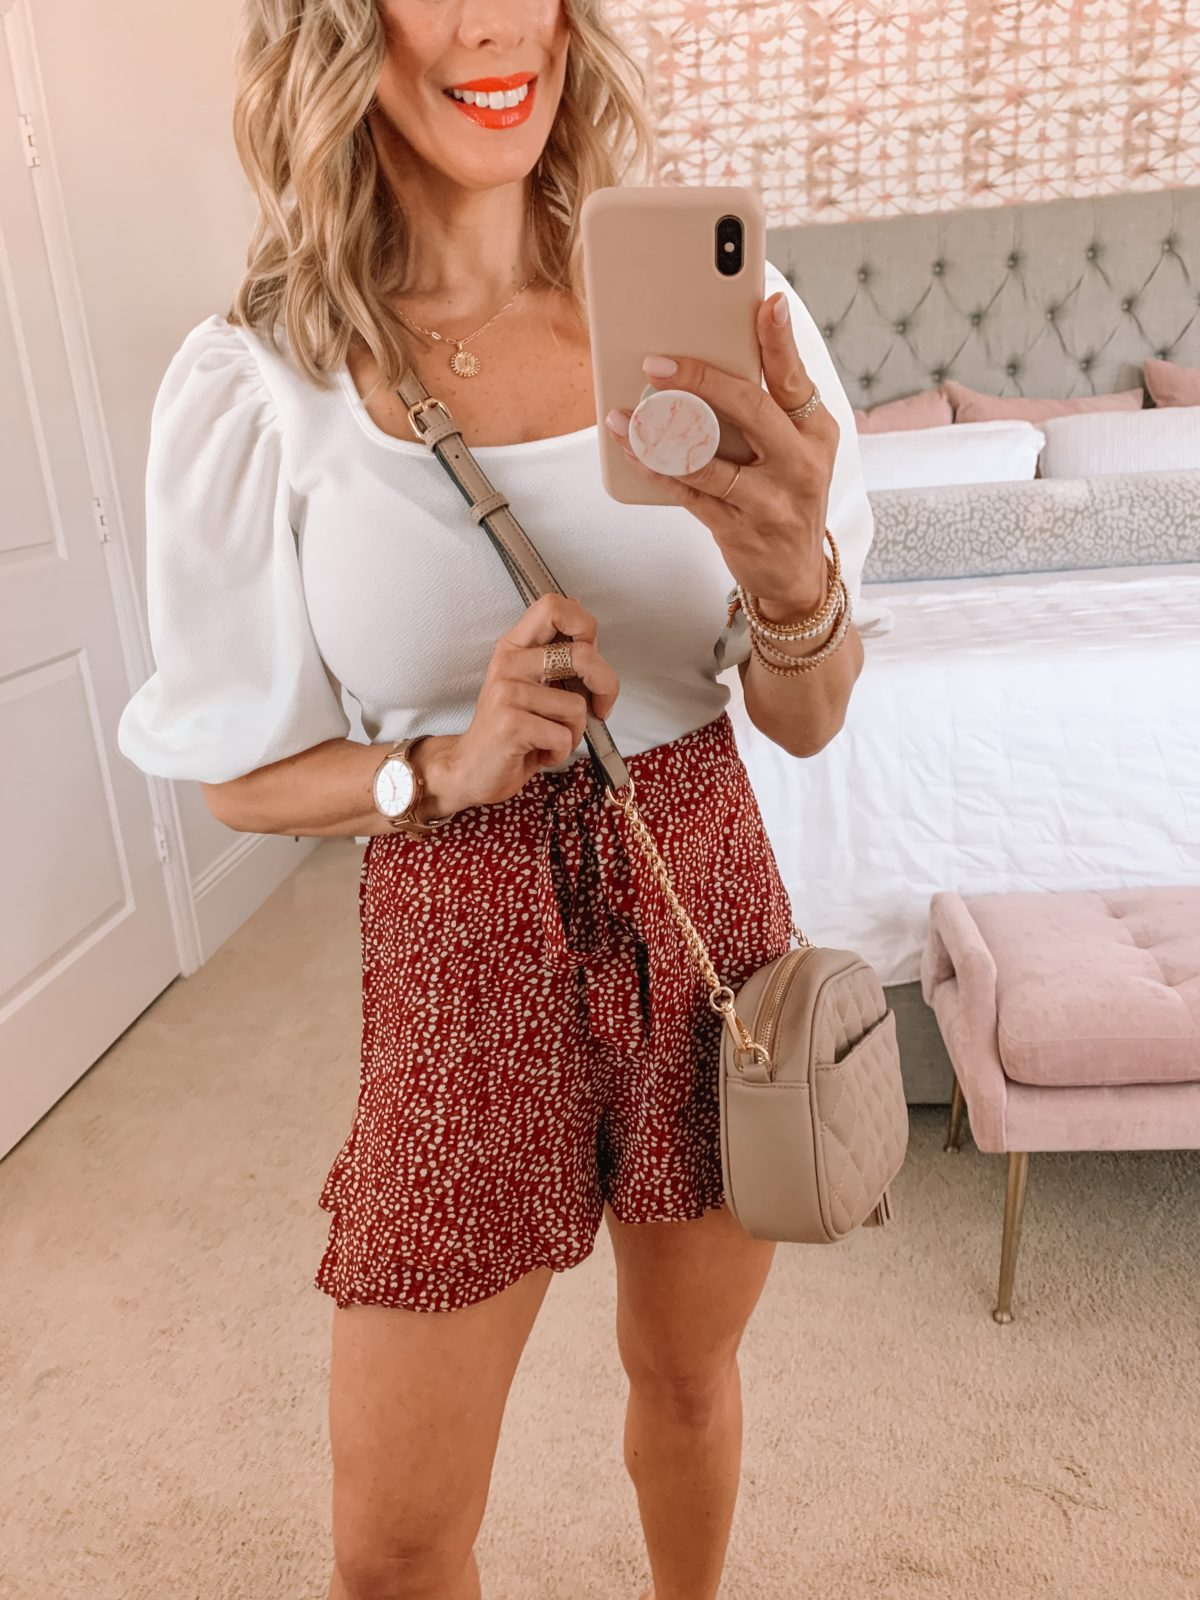 Amazon Fashion Faves, White Puff Sleeve Top and Ruffle Shorts with Sandals and Crossbody